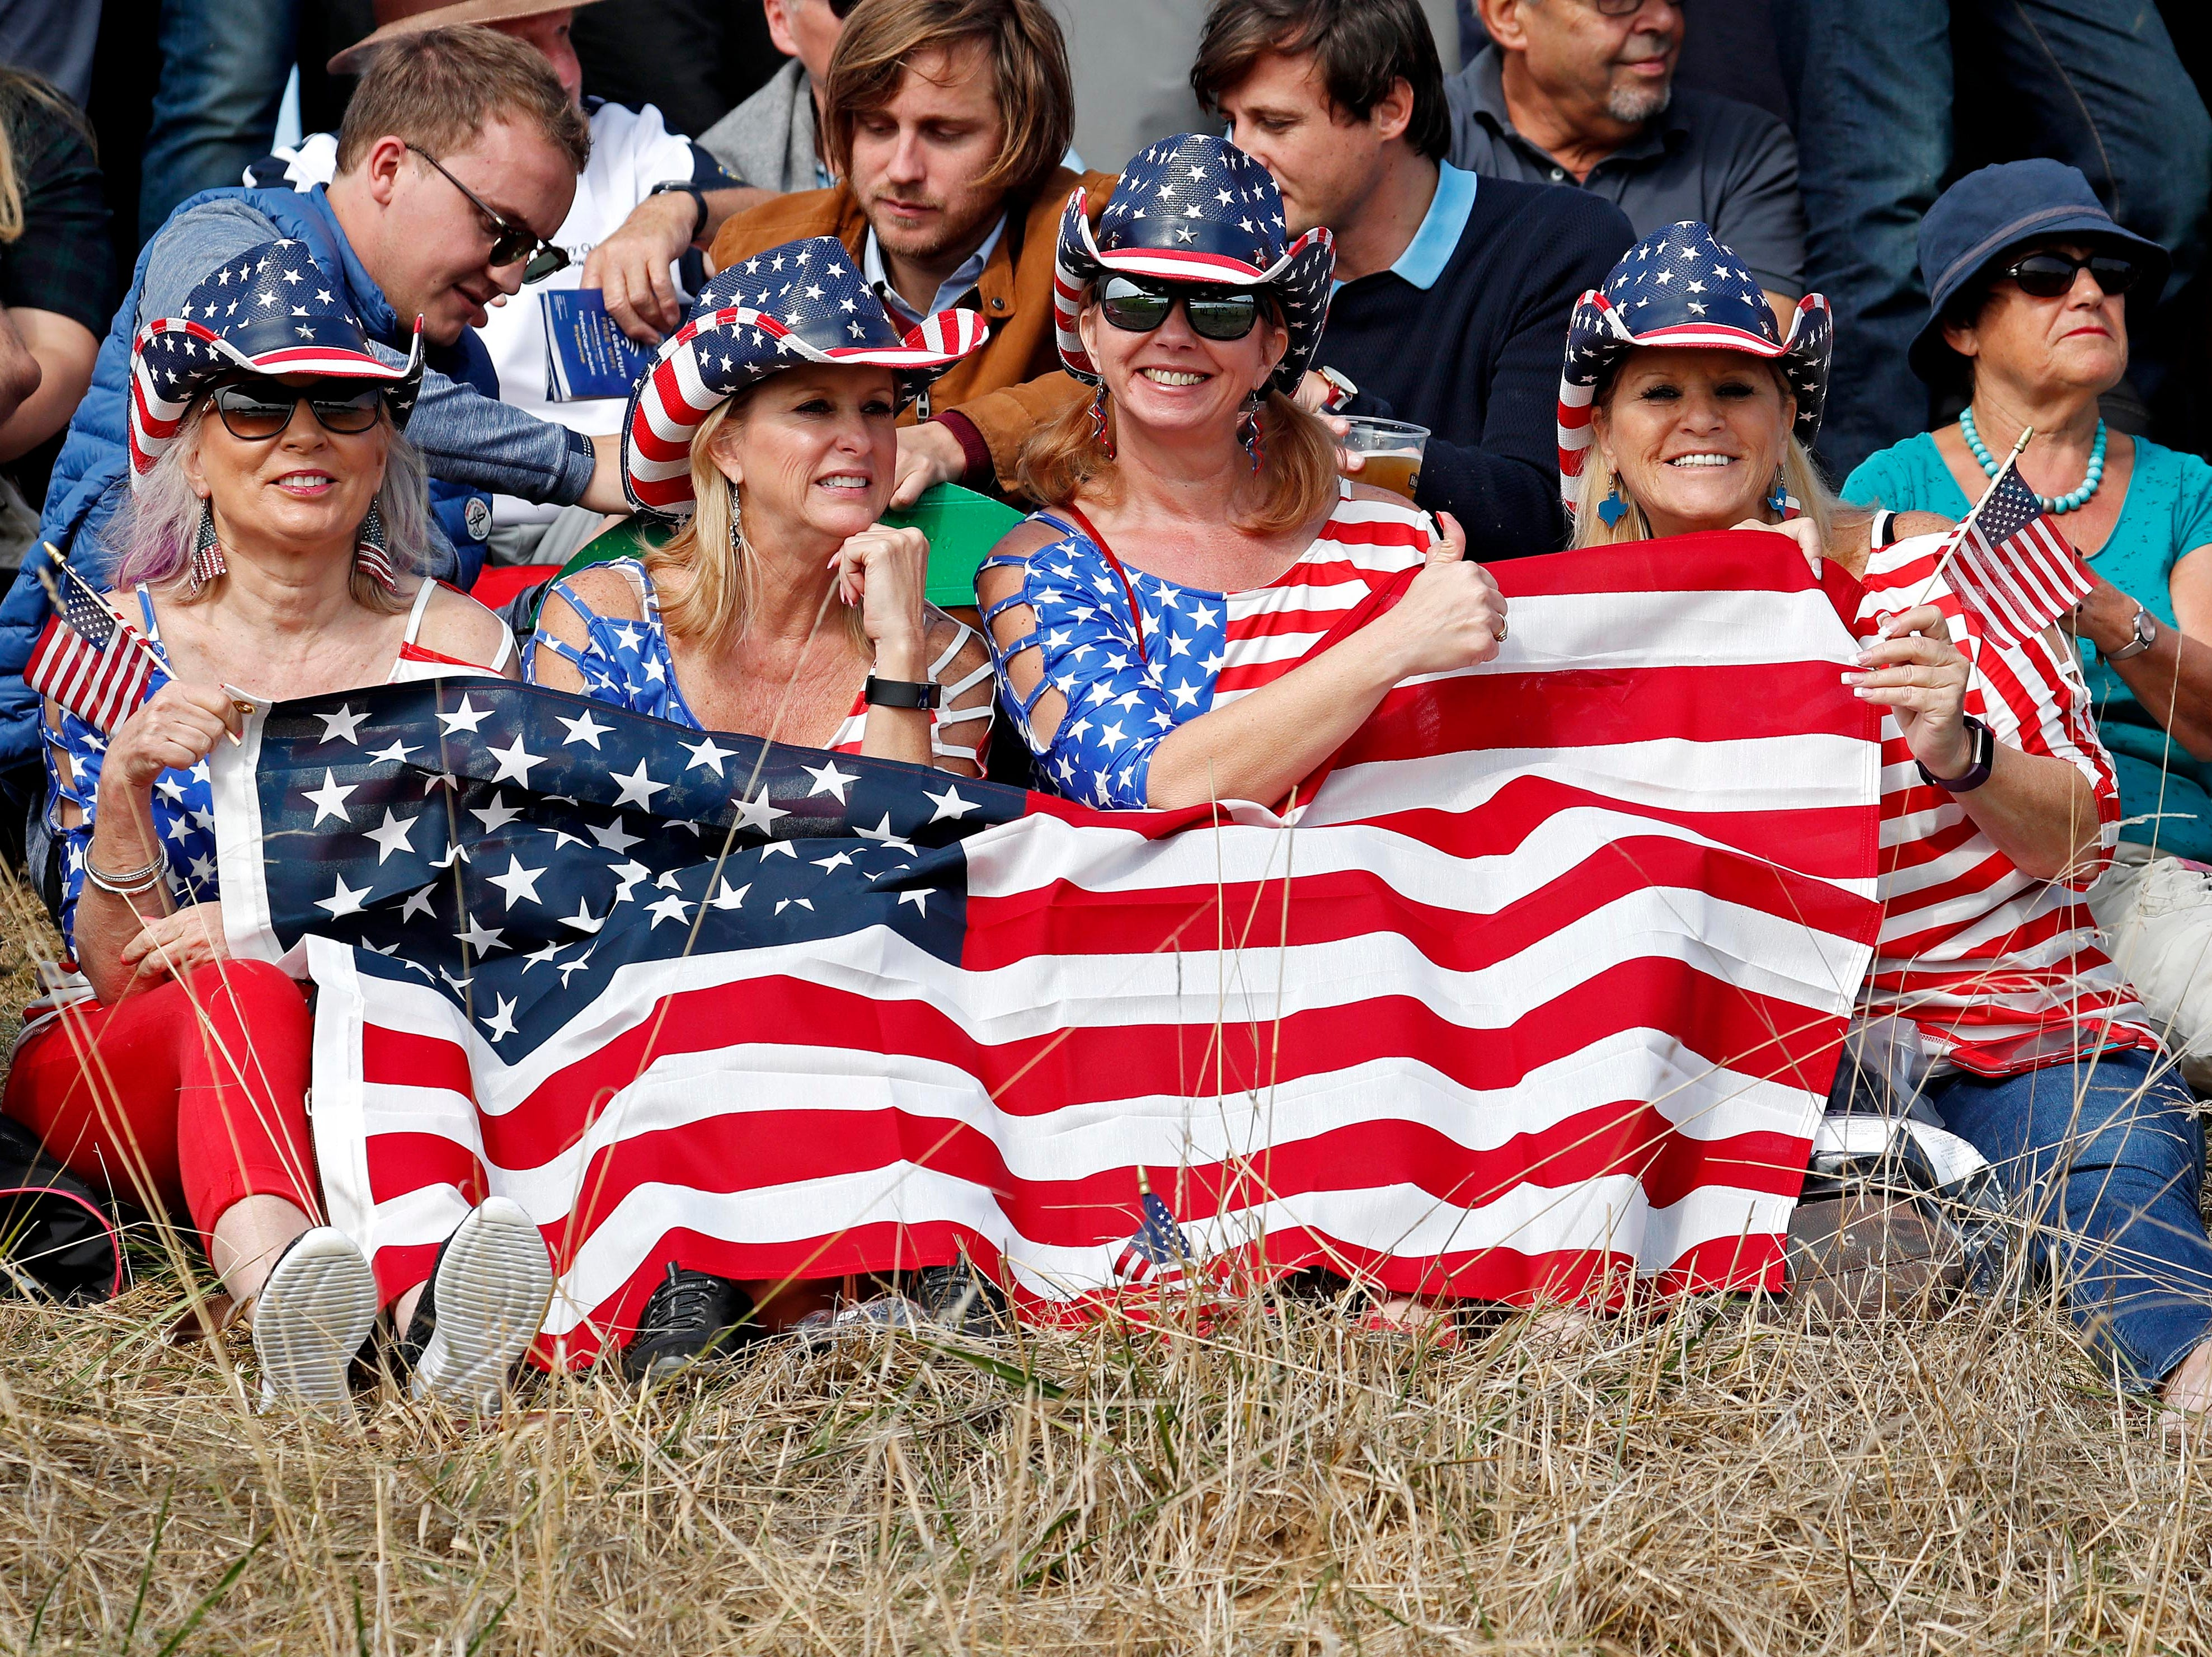 United States fans cheer on the 15th hole during the Ryder Cup Friday morning matches.